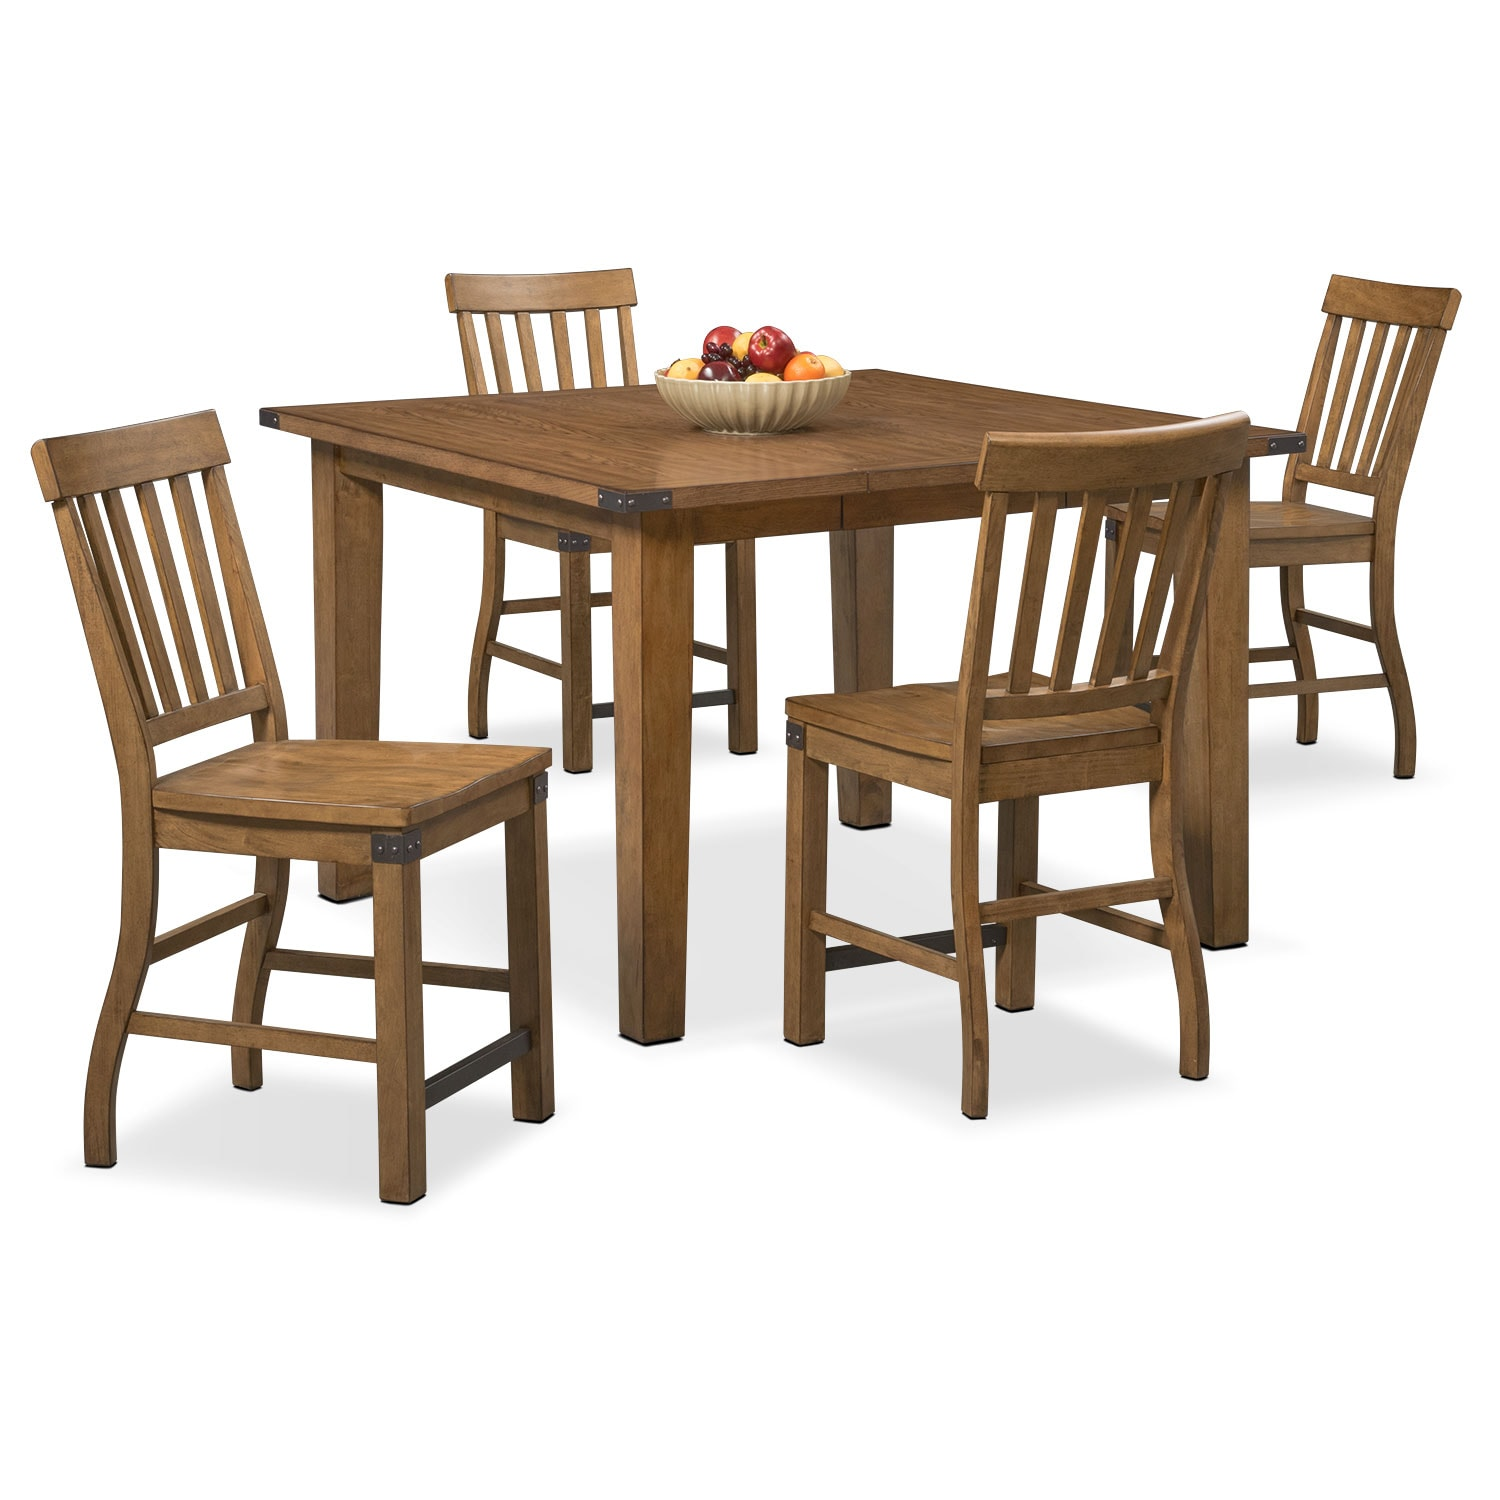 Salem Counter-Height Table and 4 Chairs - Pecan